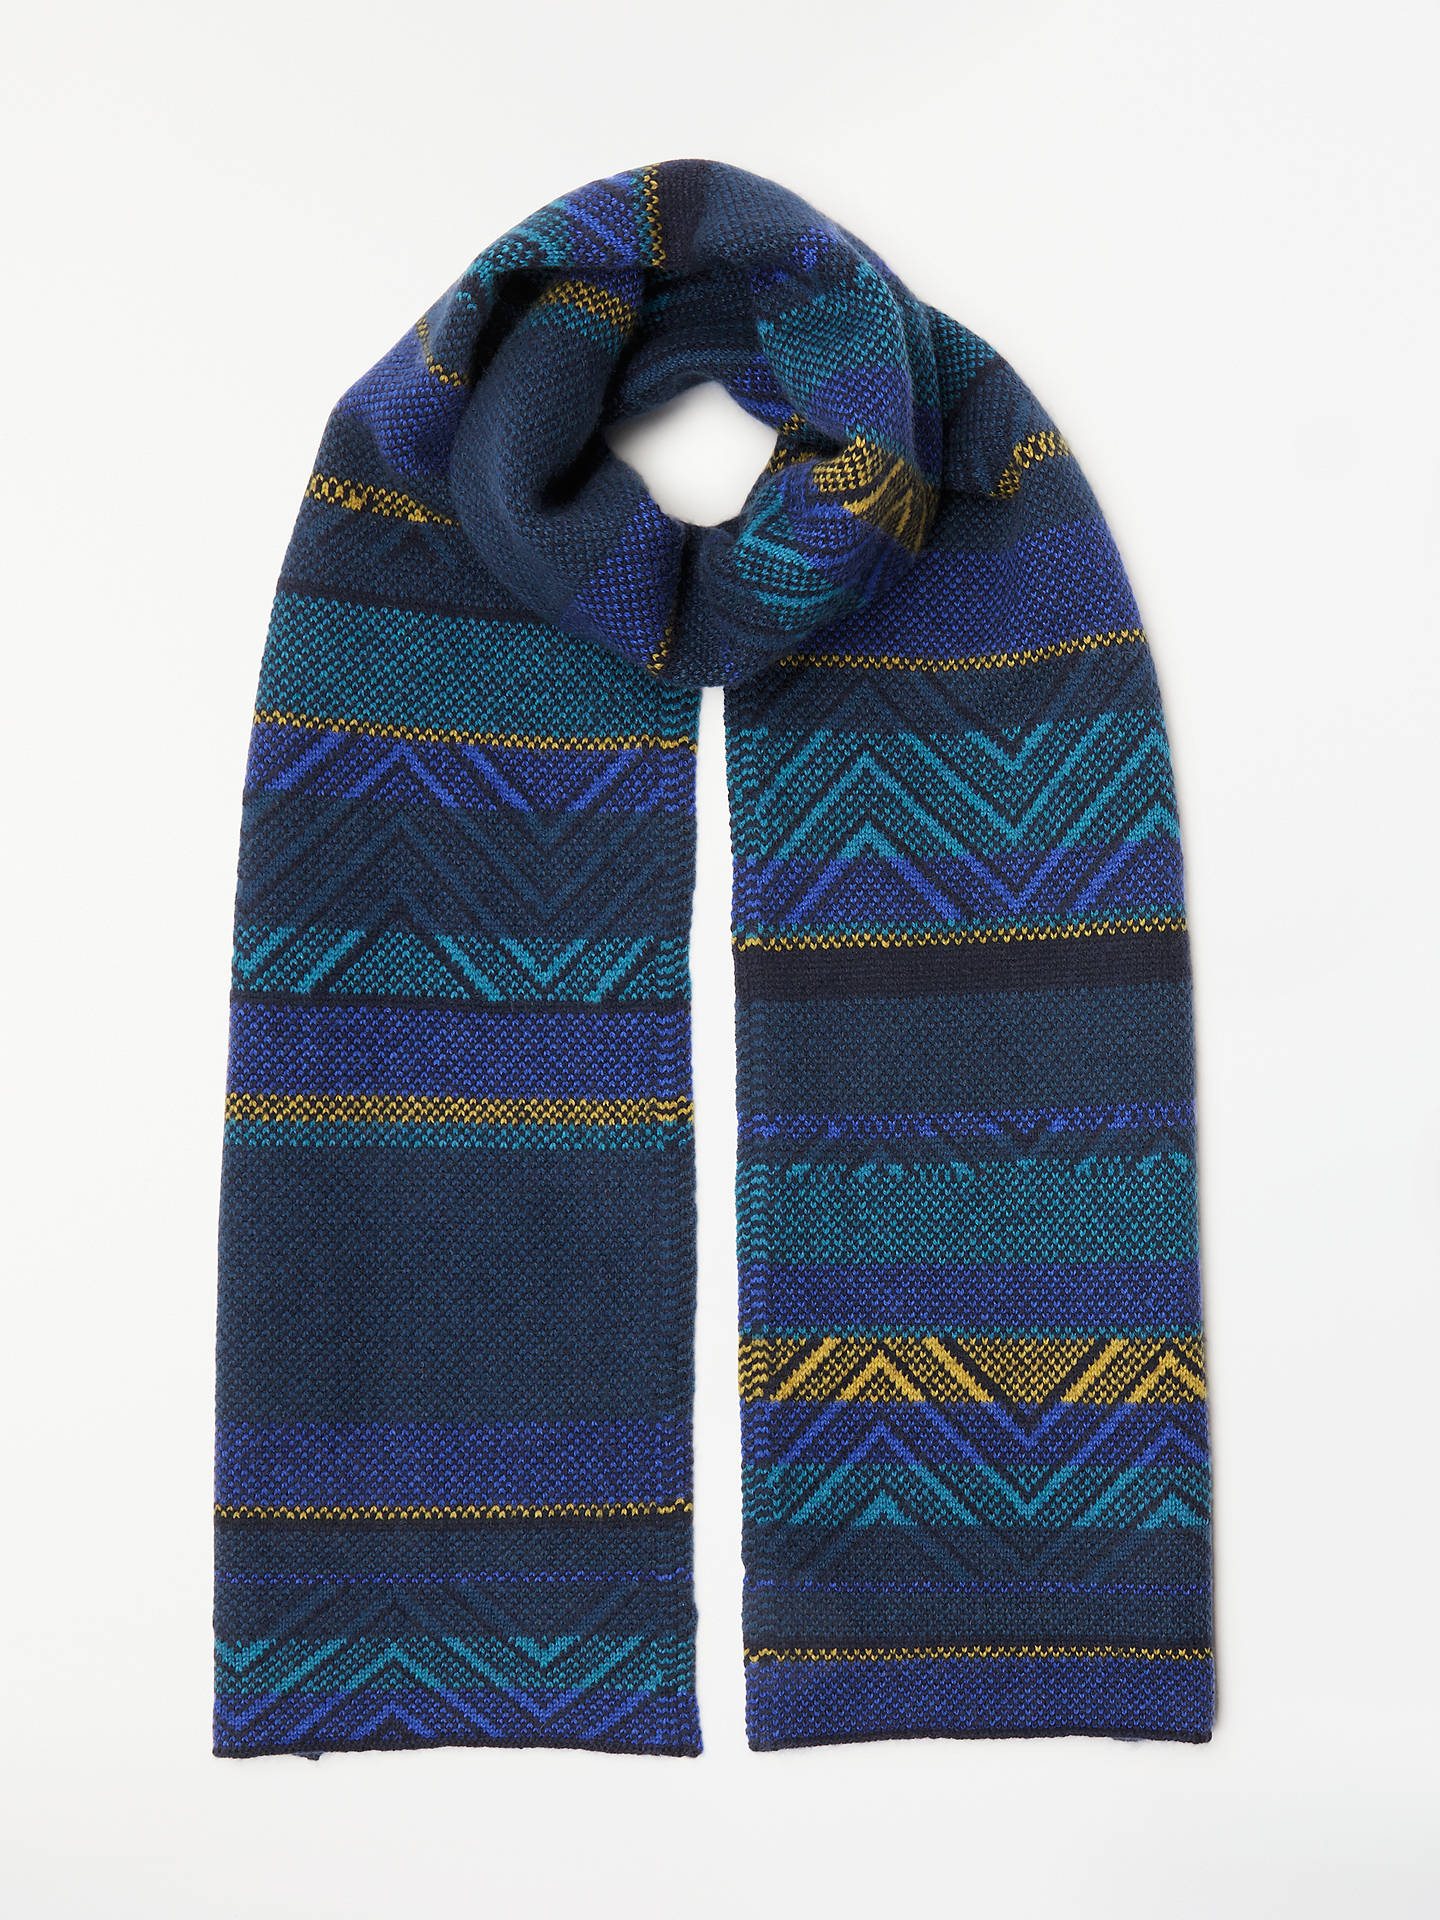 BuyJohn Lewis & Partners Chevron Cashmere Scarf, Blue/Multi Online at johnlewis.com